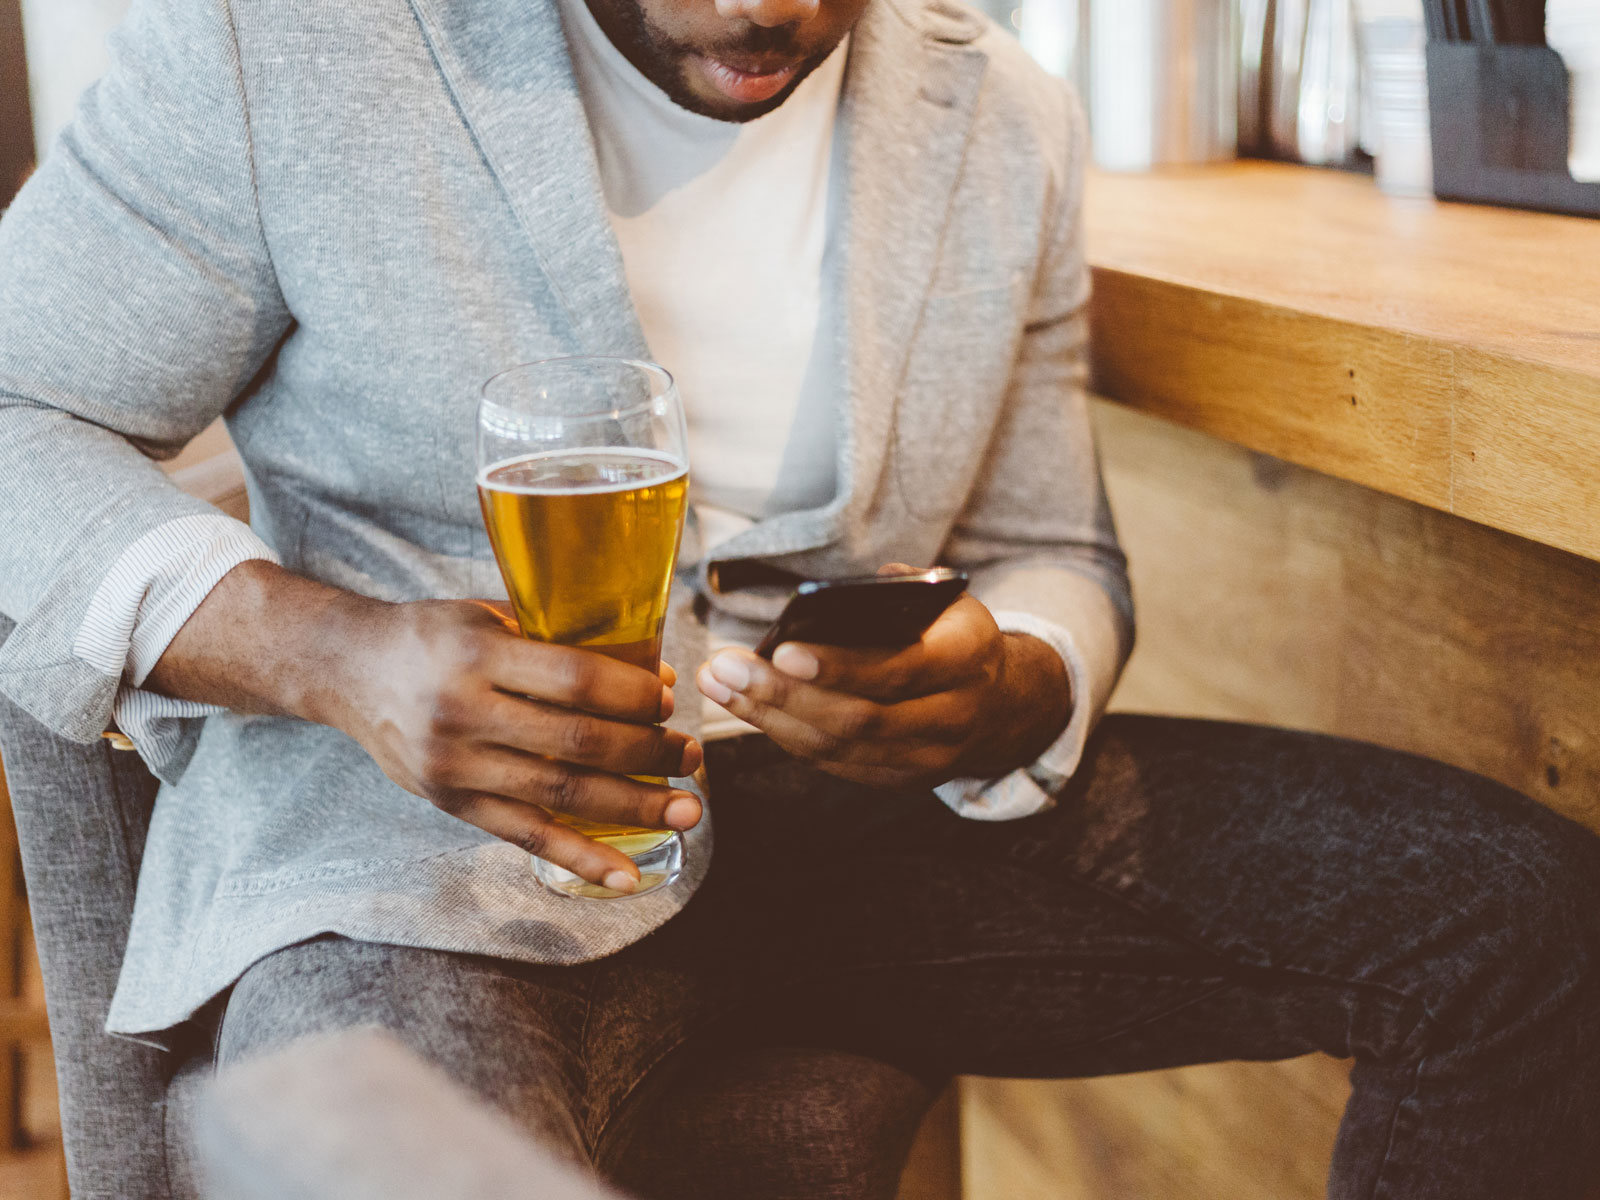 BeerAdvocate Will Launch Its New Beer Rating App In April